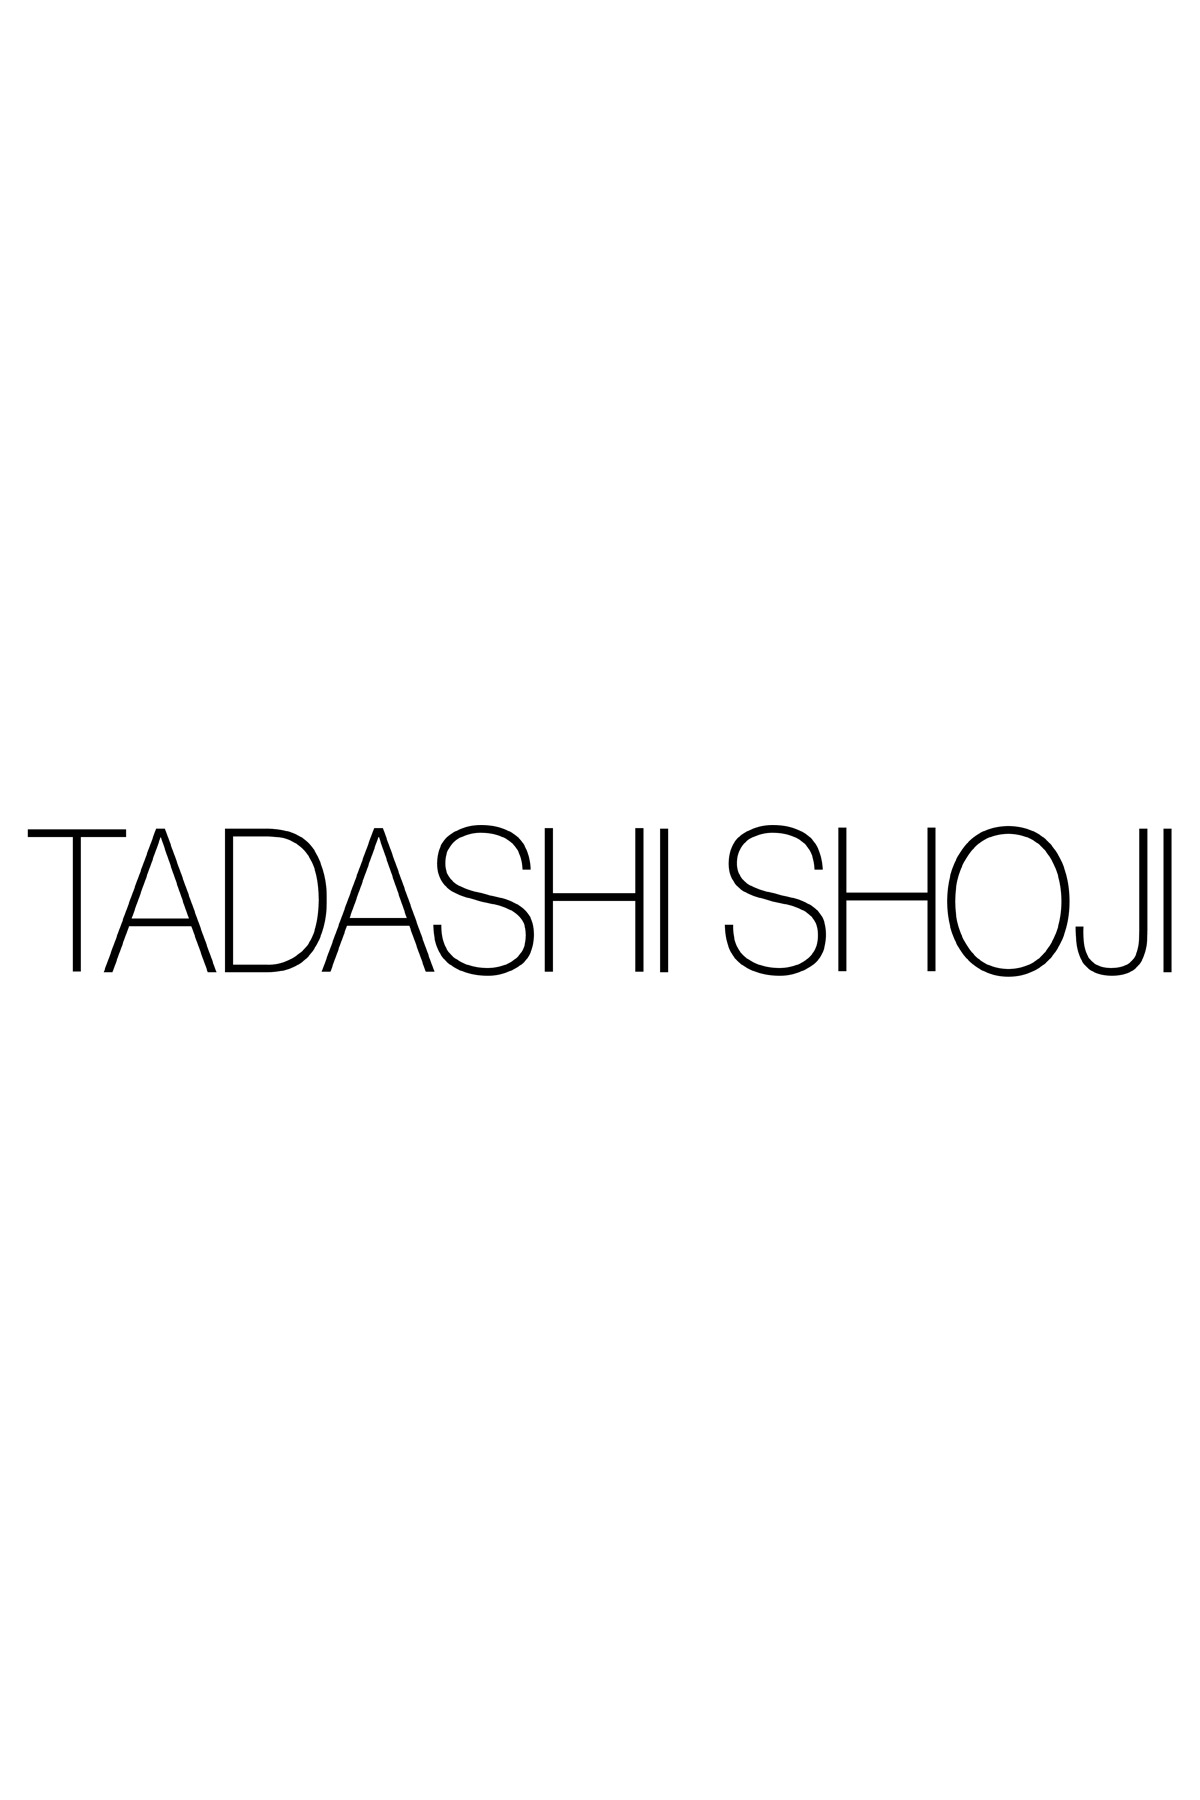 Tadashi Shoji - Brooklyn Embroidered Tassel Dress